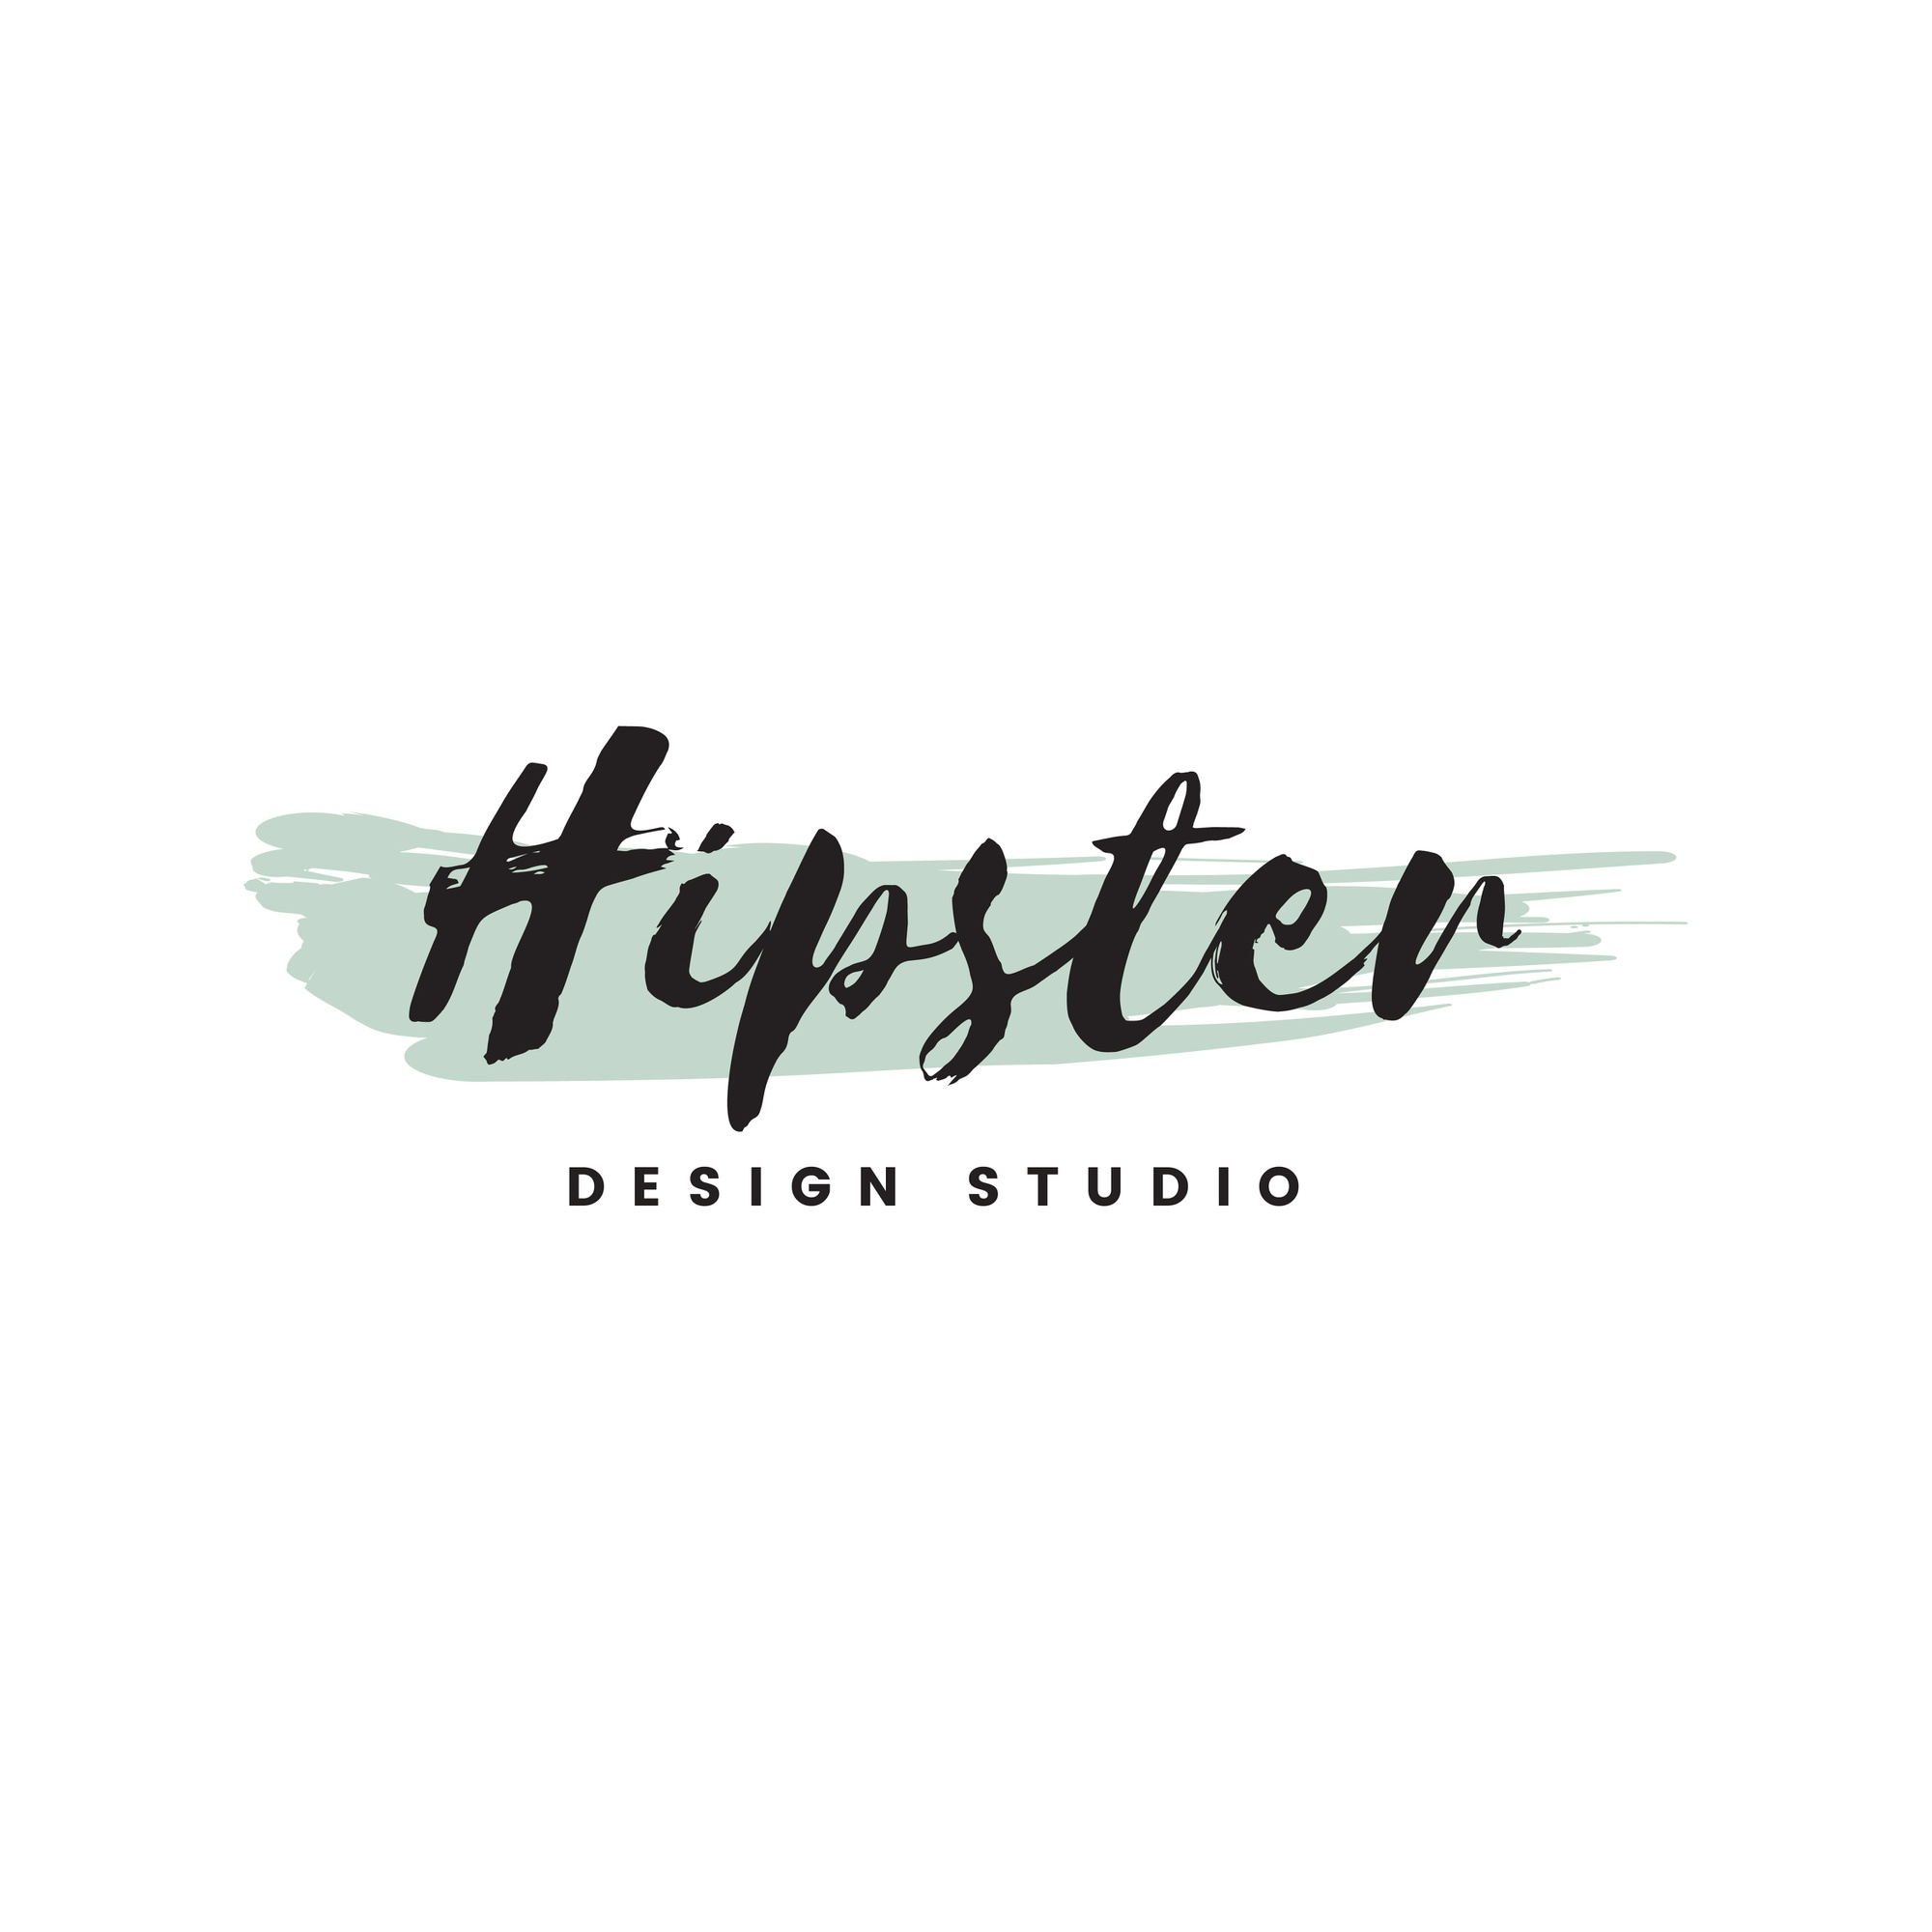 Hipster design studio logo vector